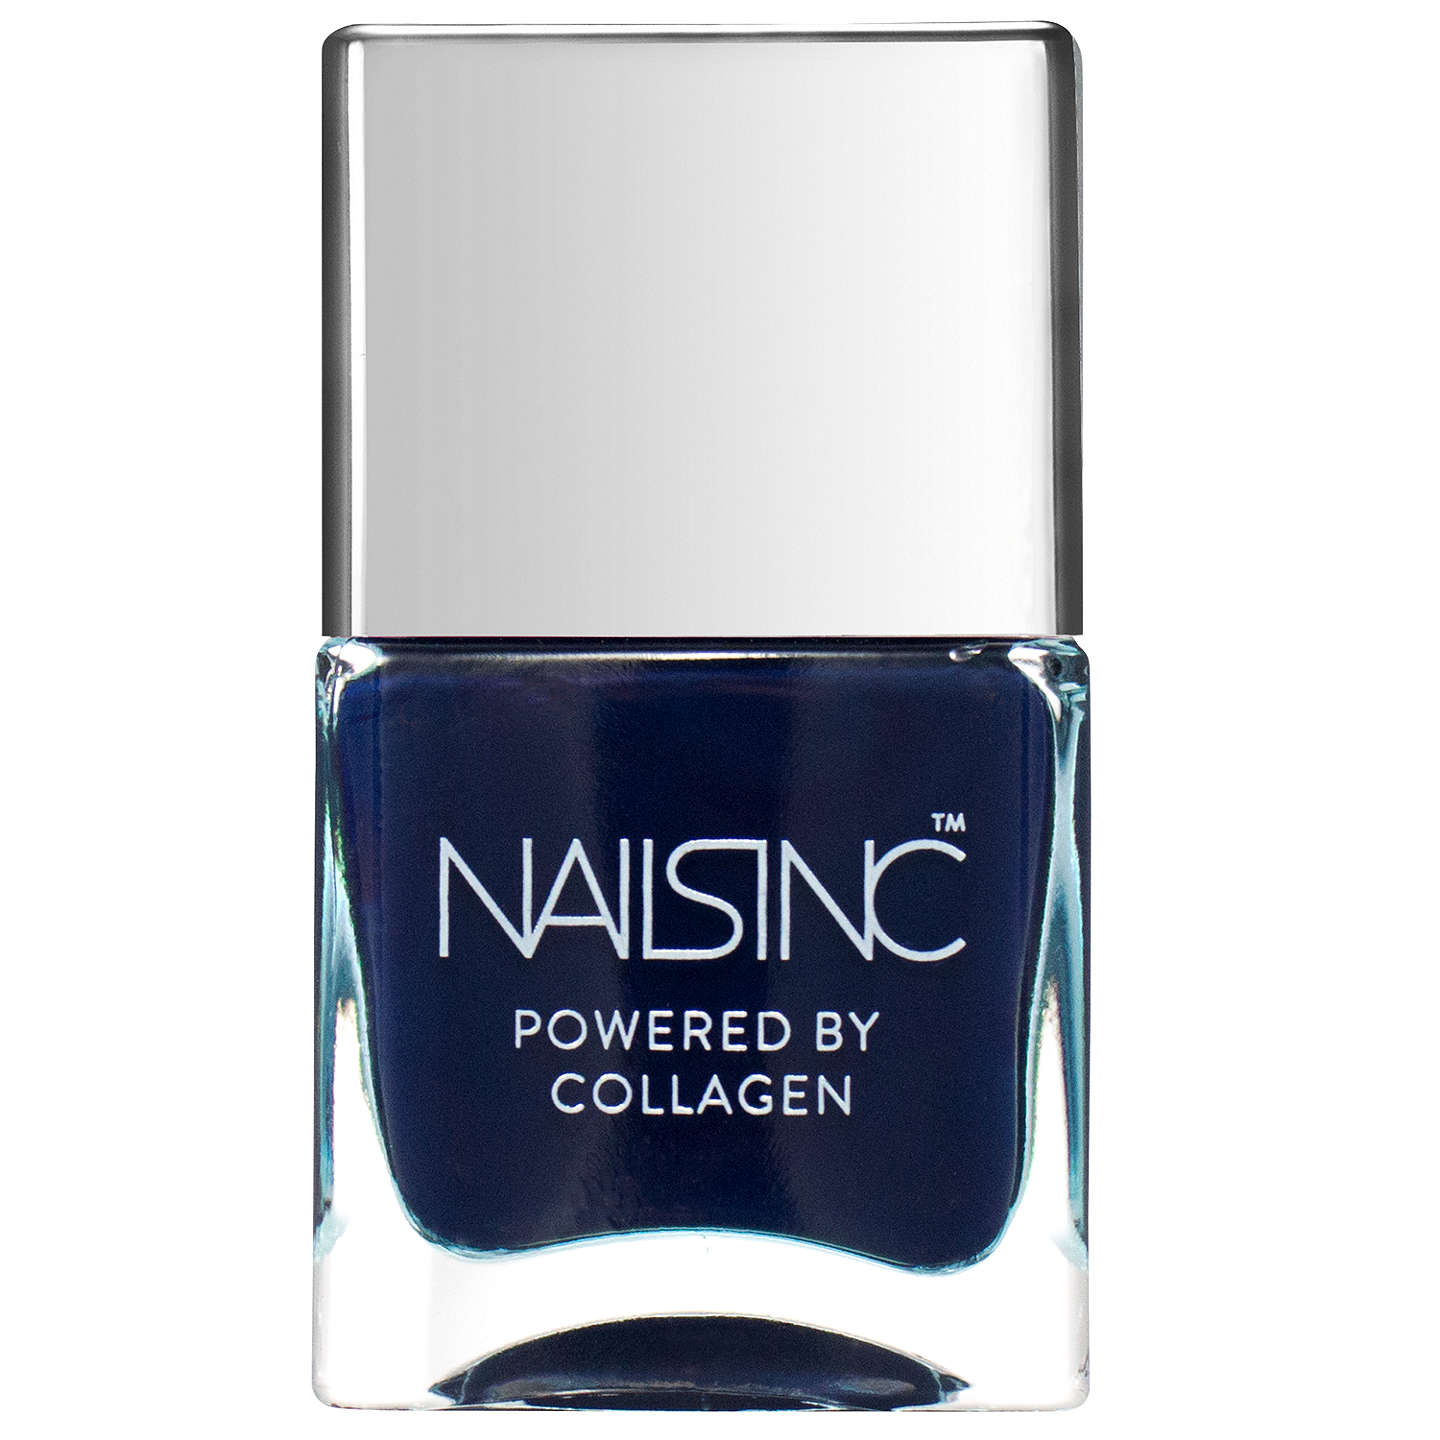 Nails Inc Powered By Collagen Nail Polish, 14ml at John Lewis